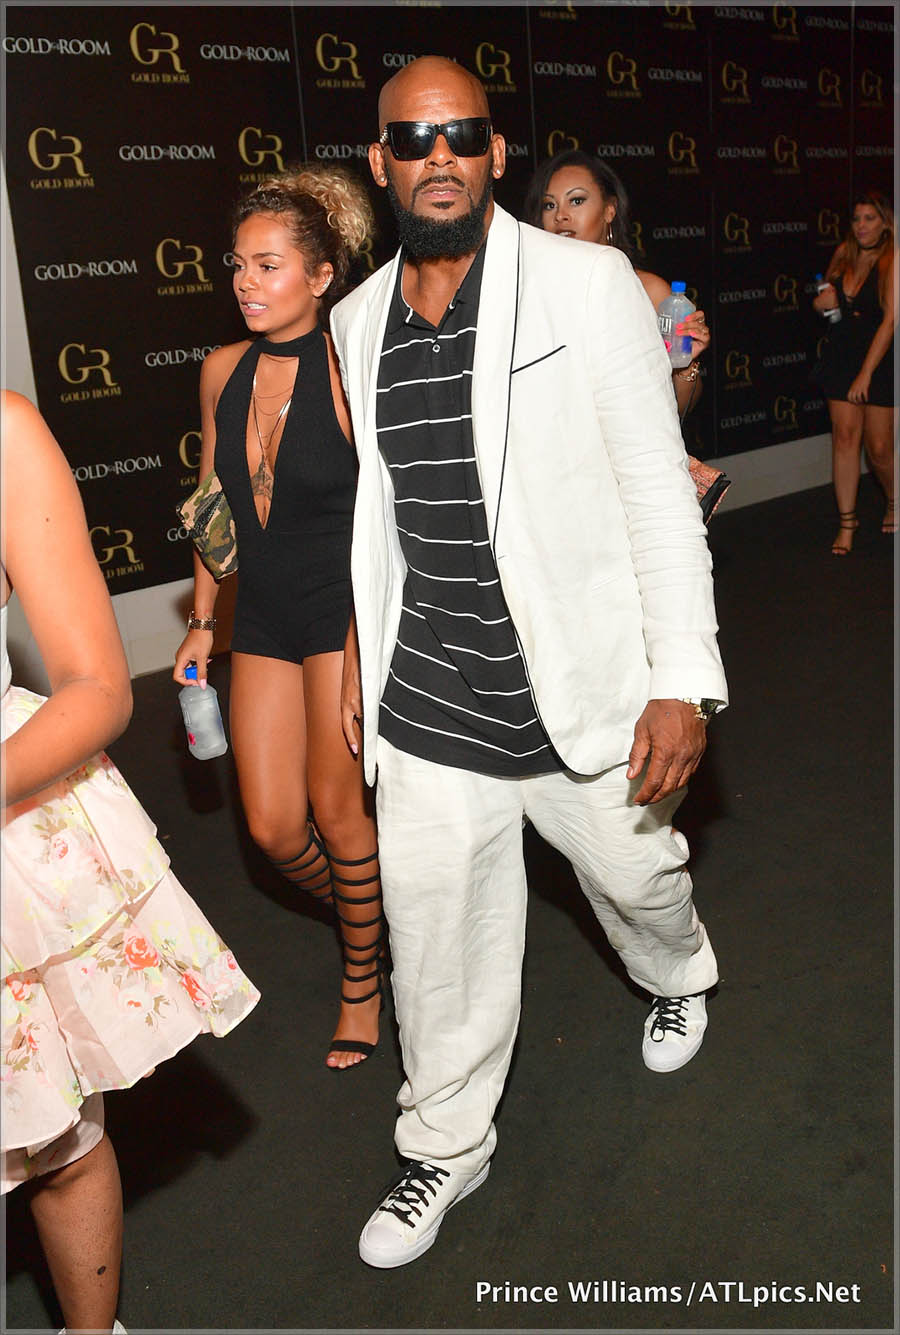 R Kelly and girlfriend at Gold Room